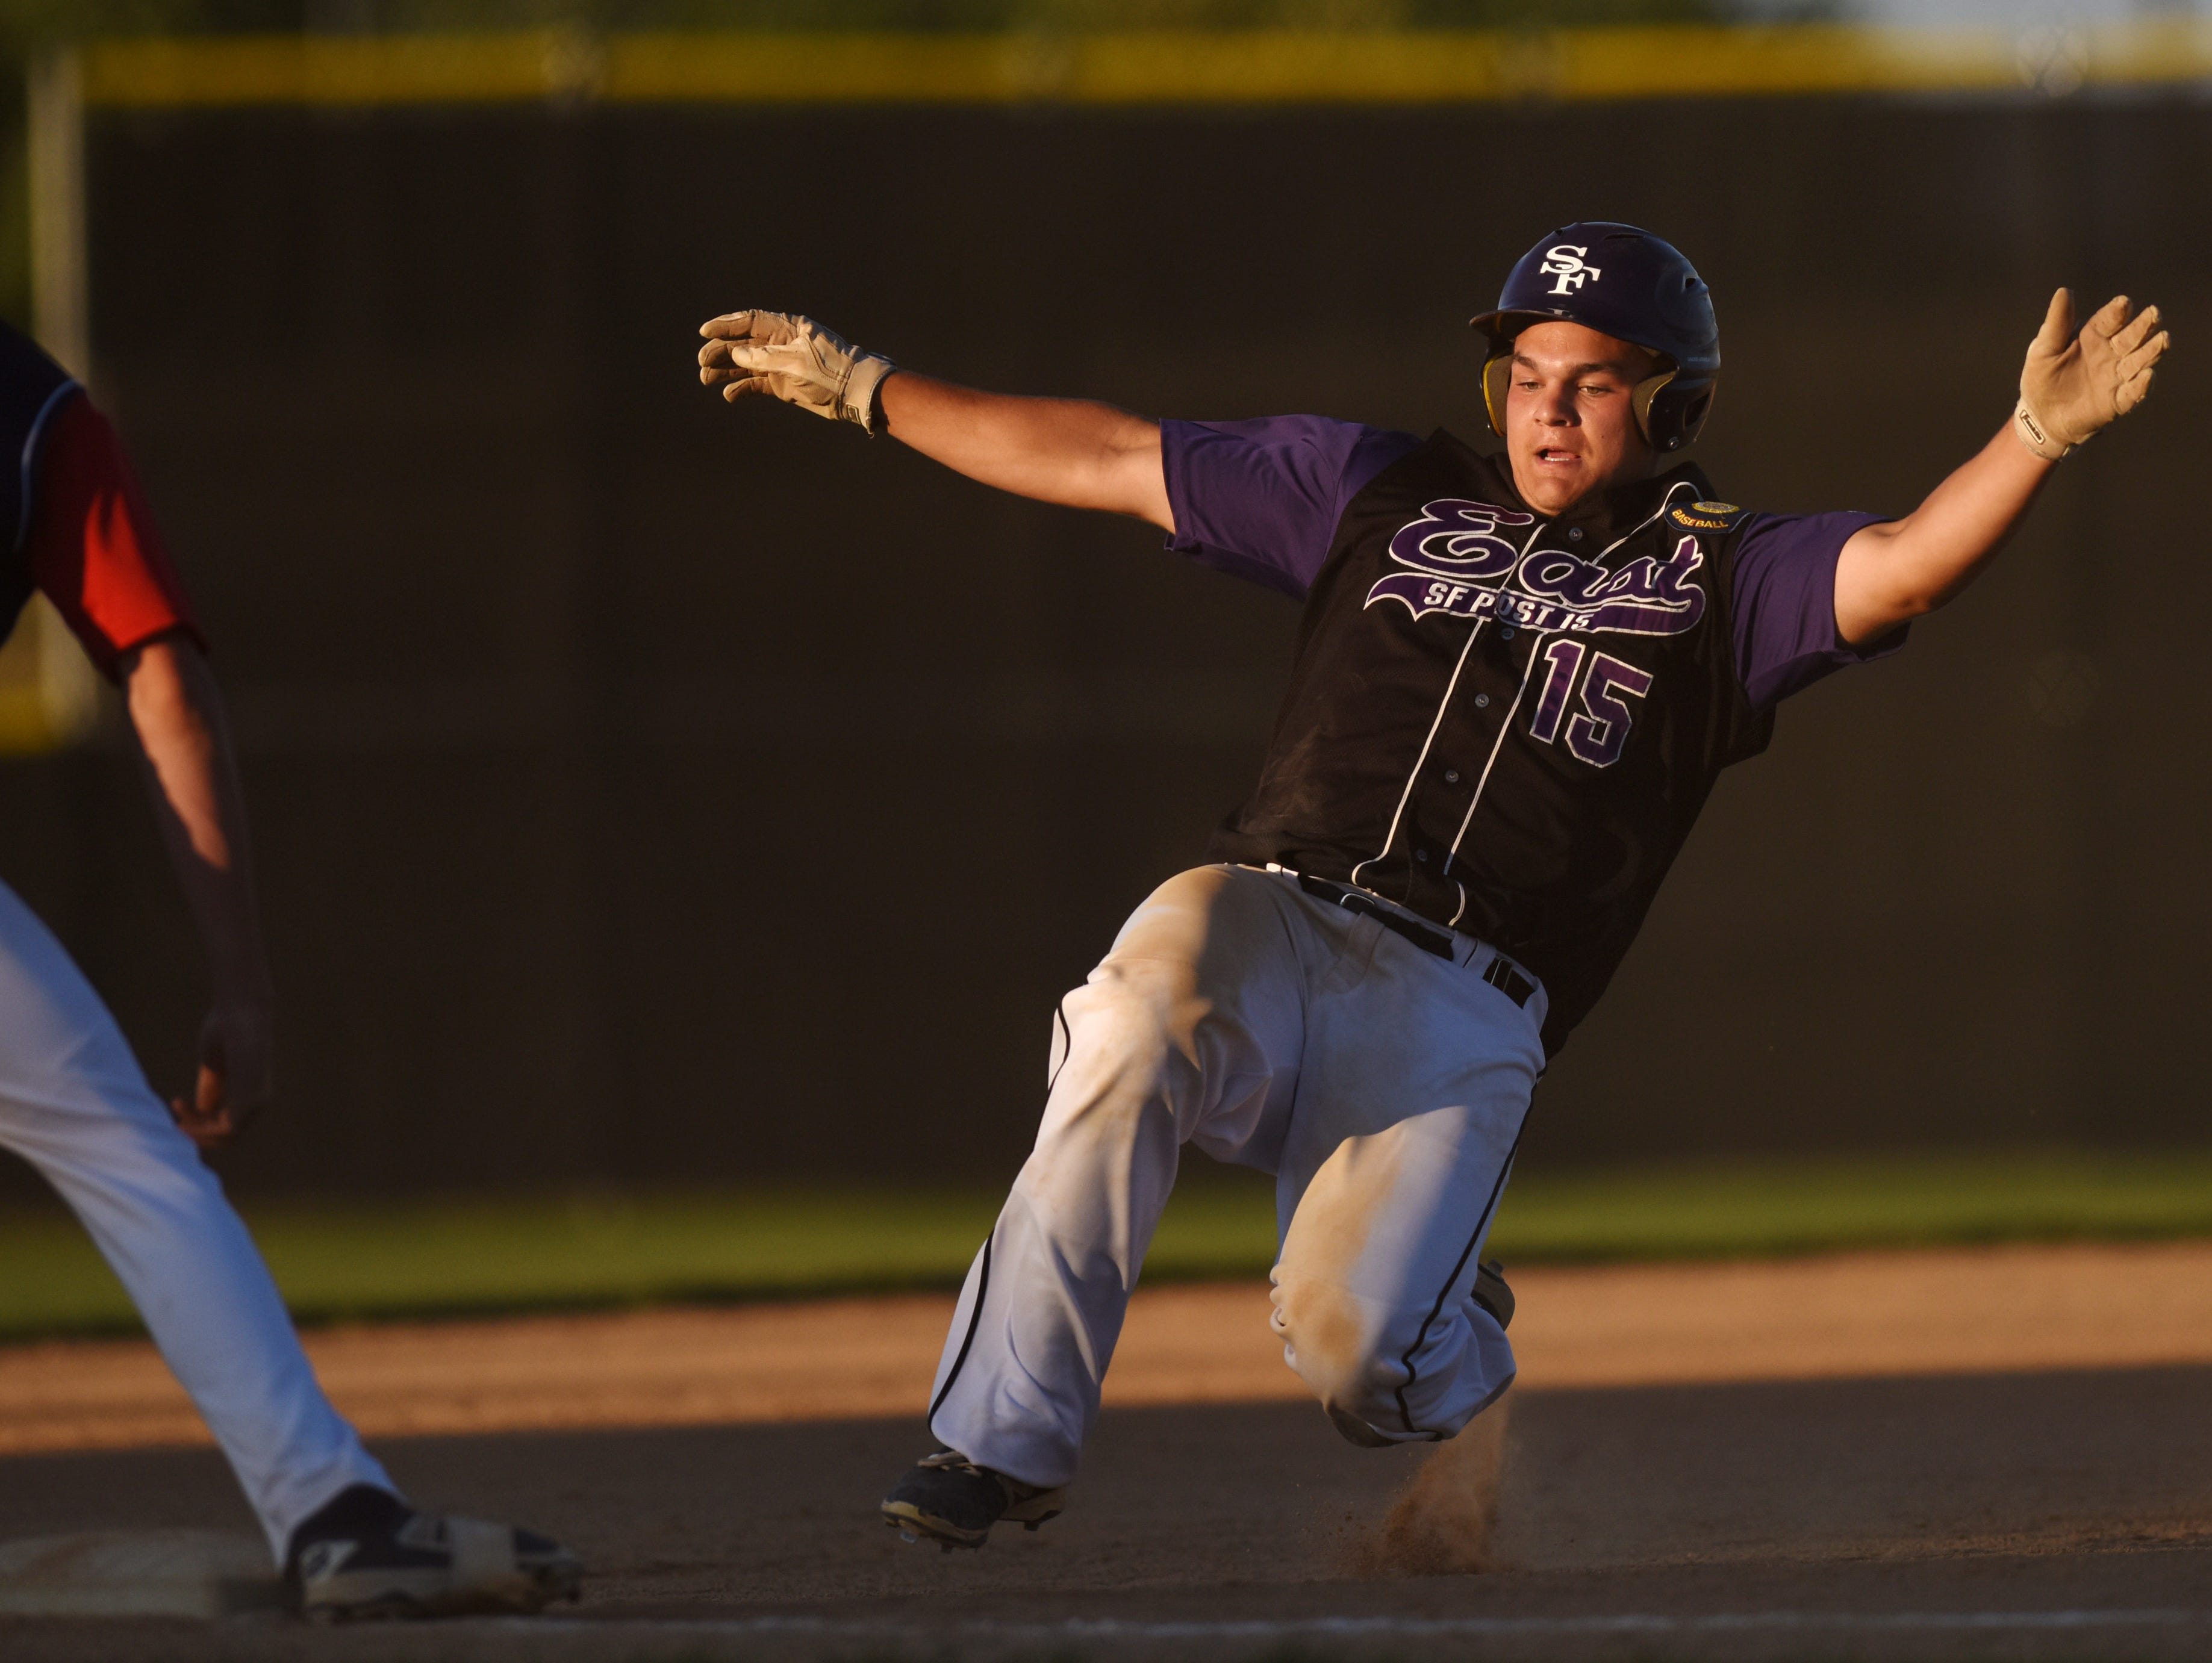 Sioux Falls Post 15 East's Corey Fichter slides safely into third while Sioux Falls Post 15 West's Alex Denevan waits on the ball during their game at Harmodon Park on Wednesday night.